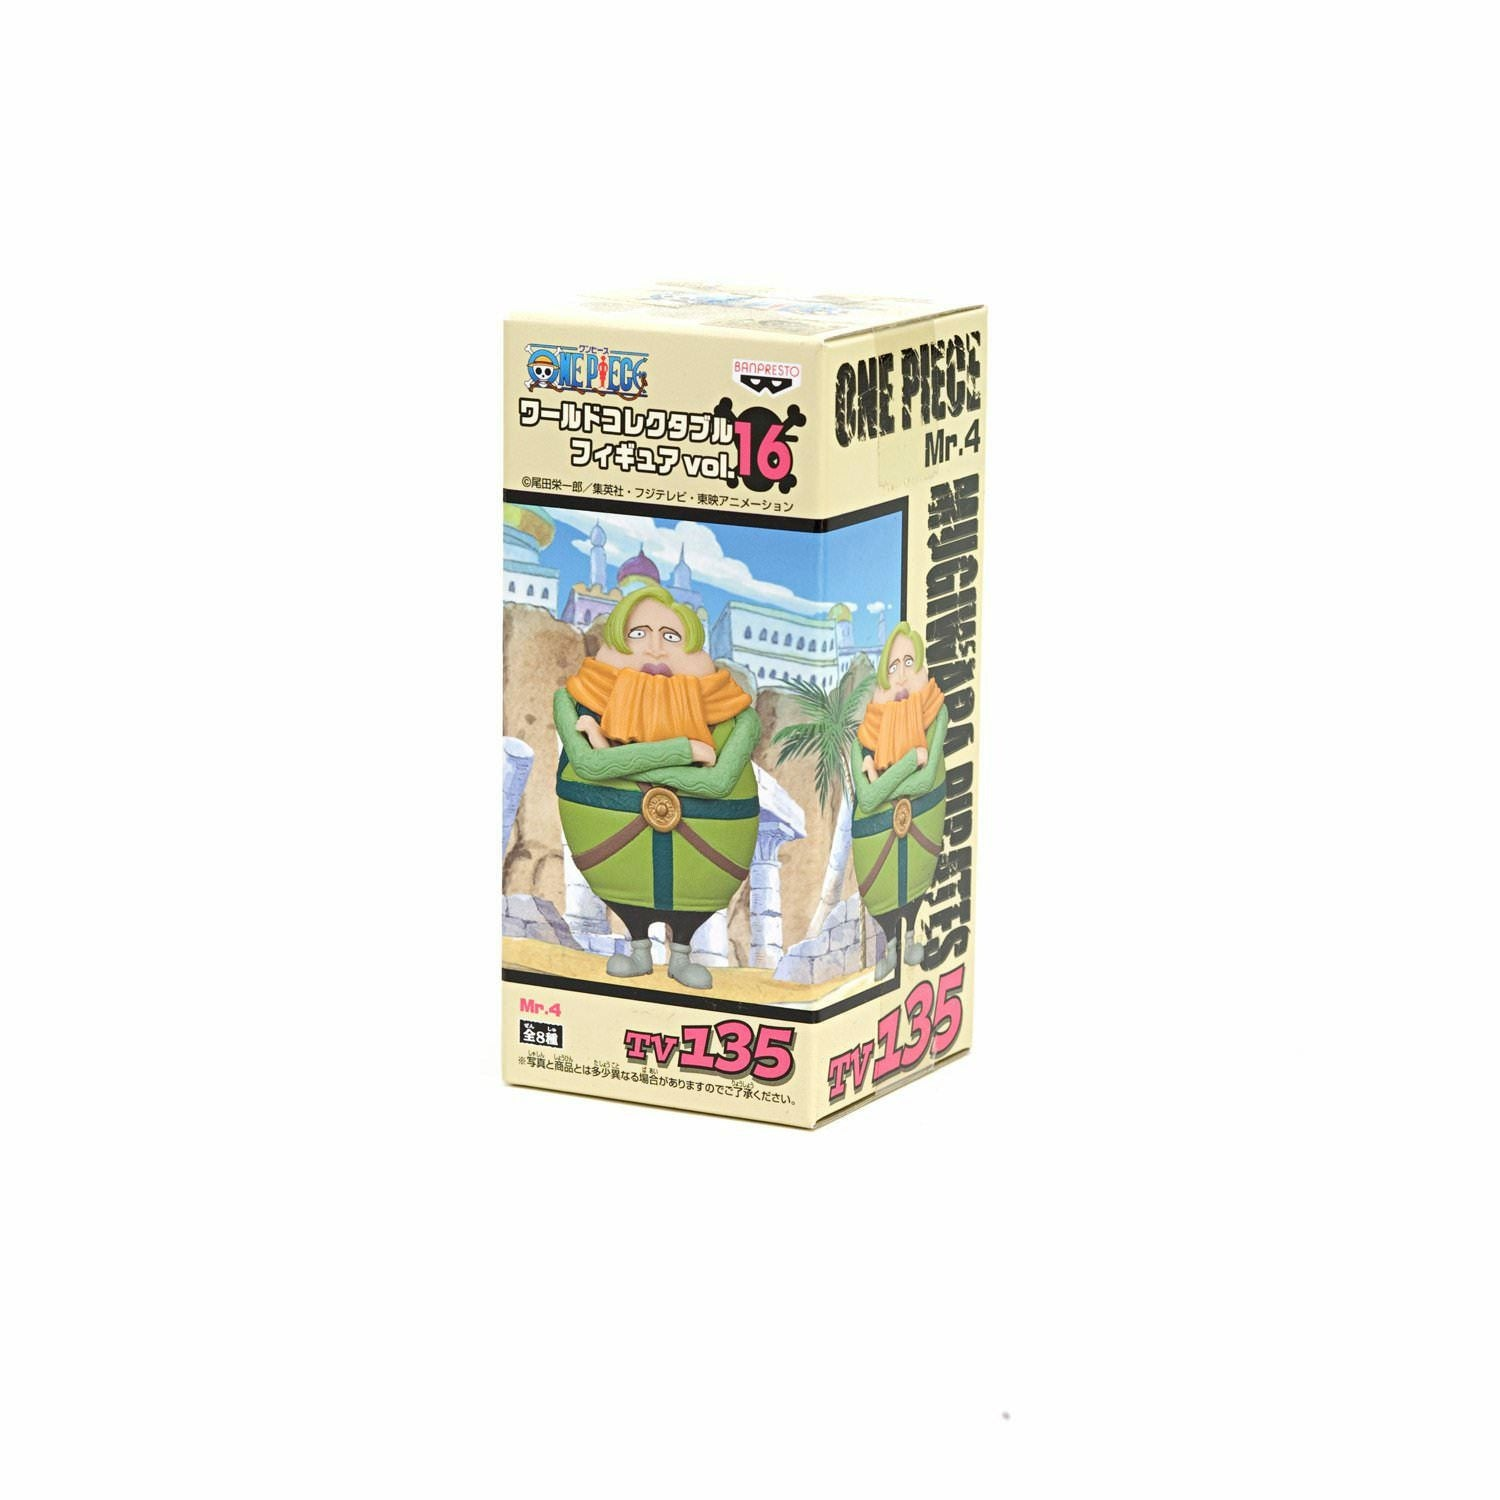 One Piece Collectable New World Figure Vol.16 - Mr. 4 (TV135)